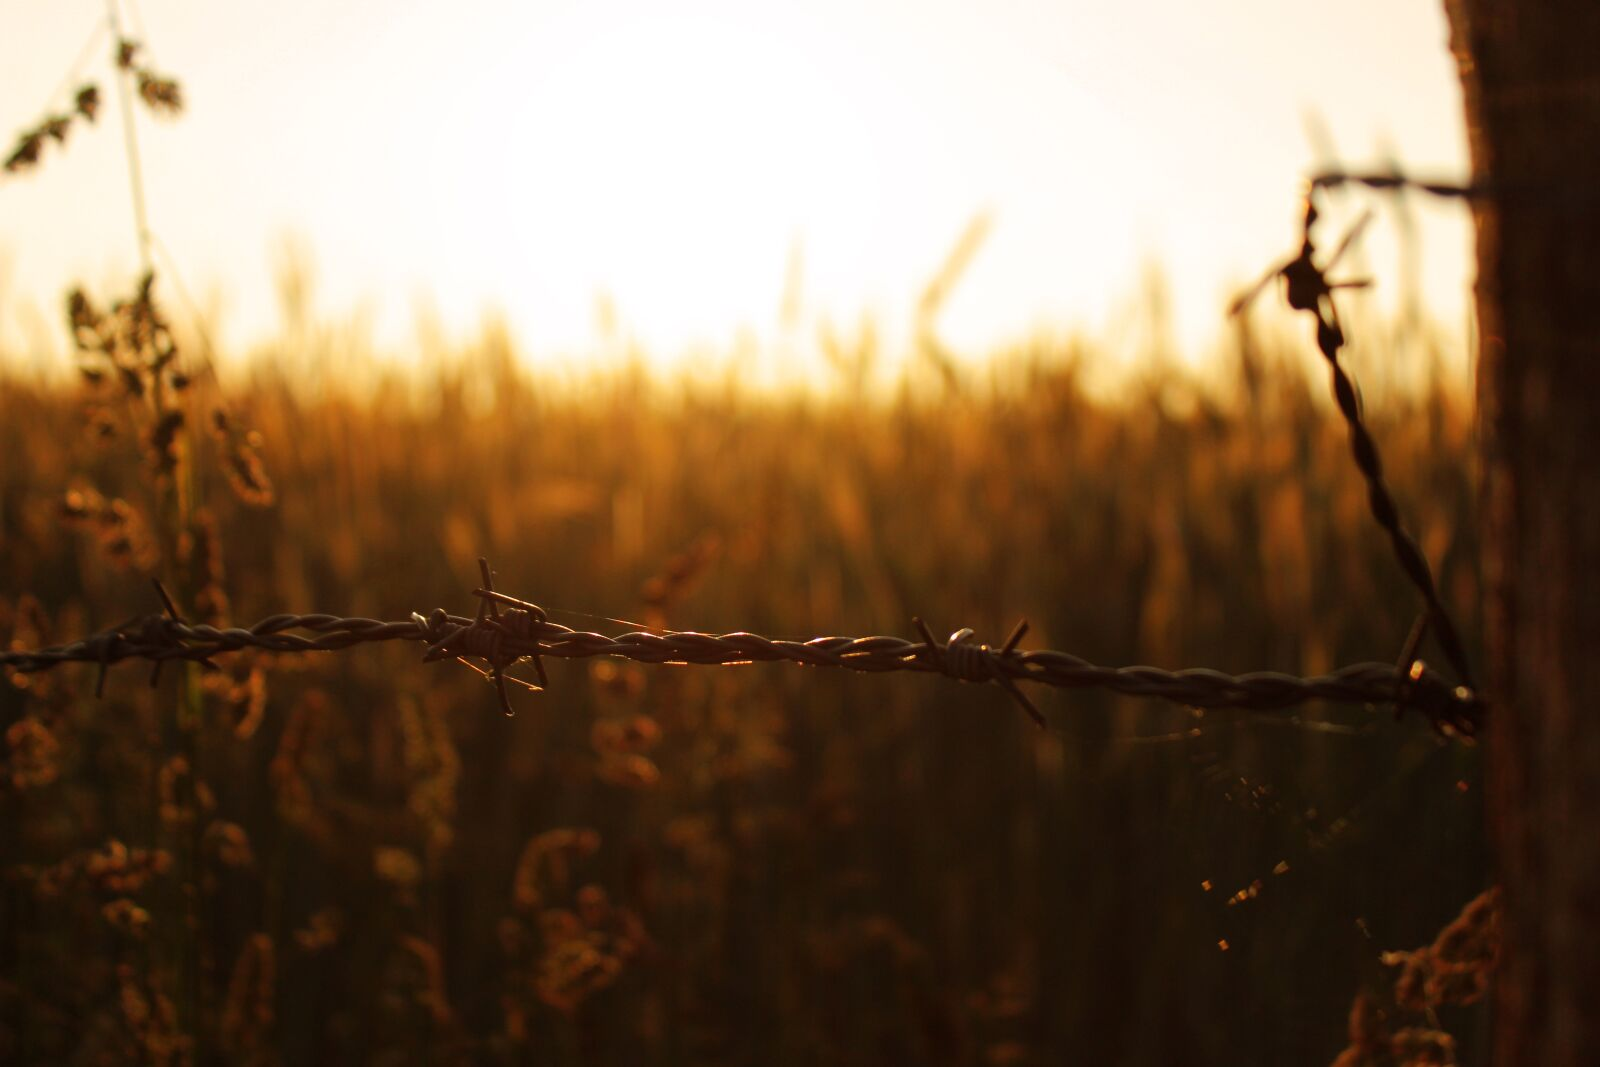 """Canon EOS 600D (Rebel EOS T3i / EOS Kiss X5) sample photo. """"Barbed wire, fence, cornfield"""" photography"""